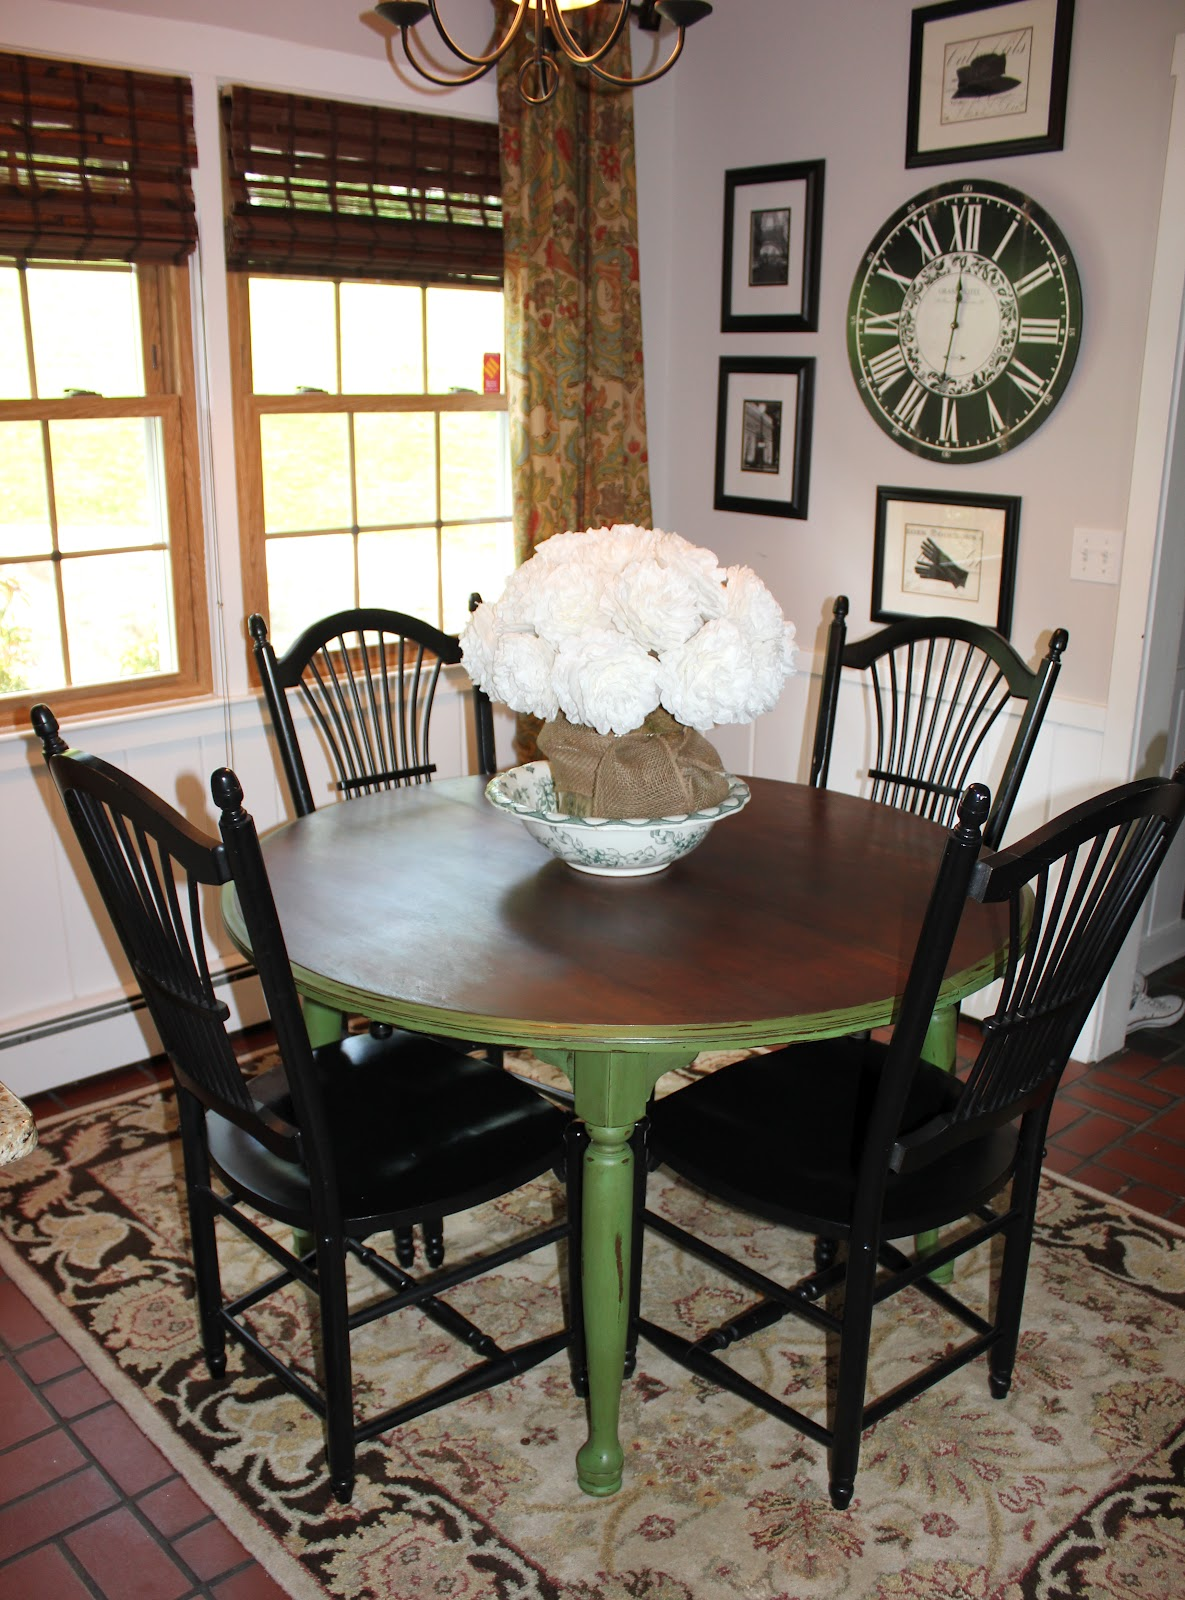 Painted Table And Chairs Mickey Mouse Chair Set My Passion For Decor Green With Envy The Kitchen